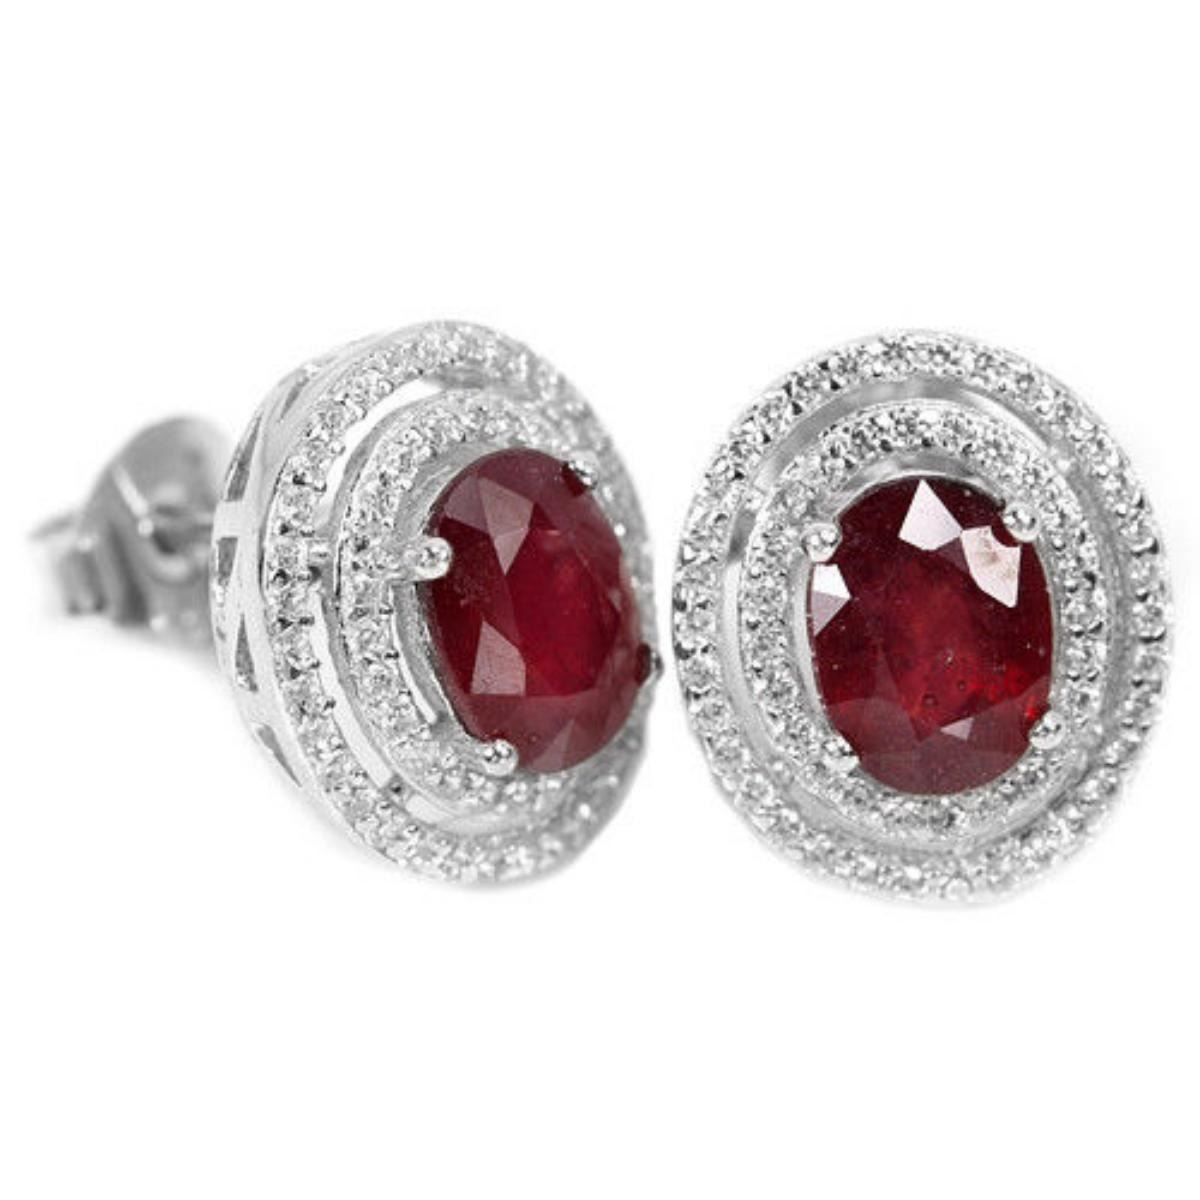 anniversary fullxfull for women red jewelry natural her style listing diamond diana earrings present ruby stud with il